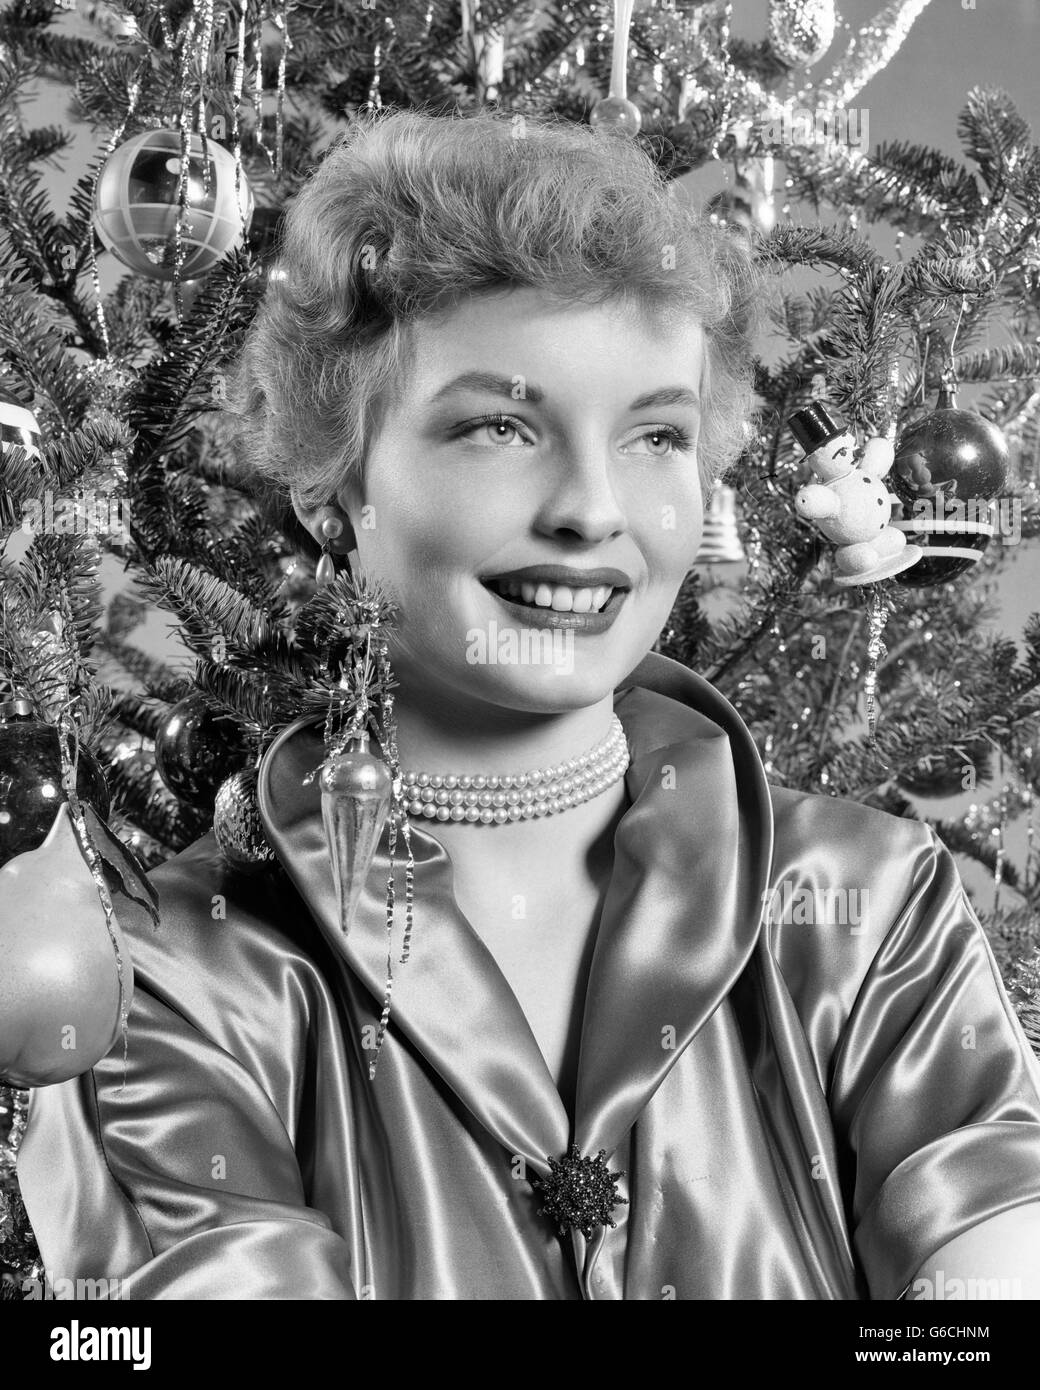 1940s 1950s Portrait Smiling Woman With Christmas Tree